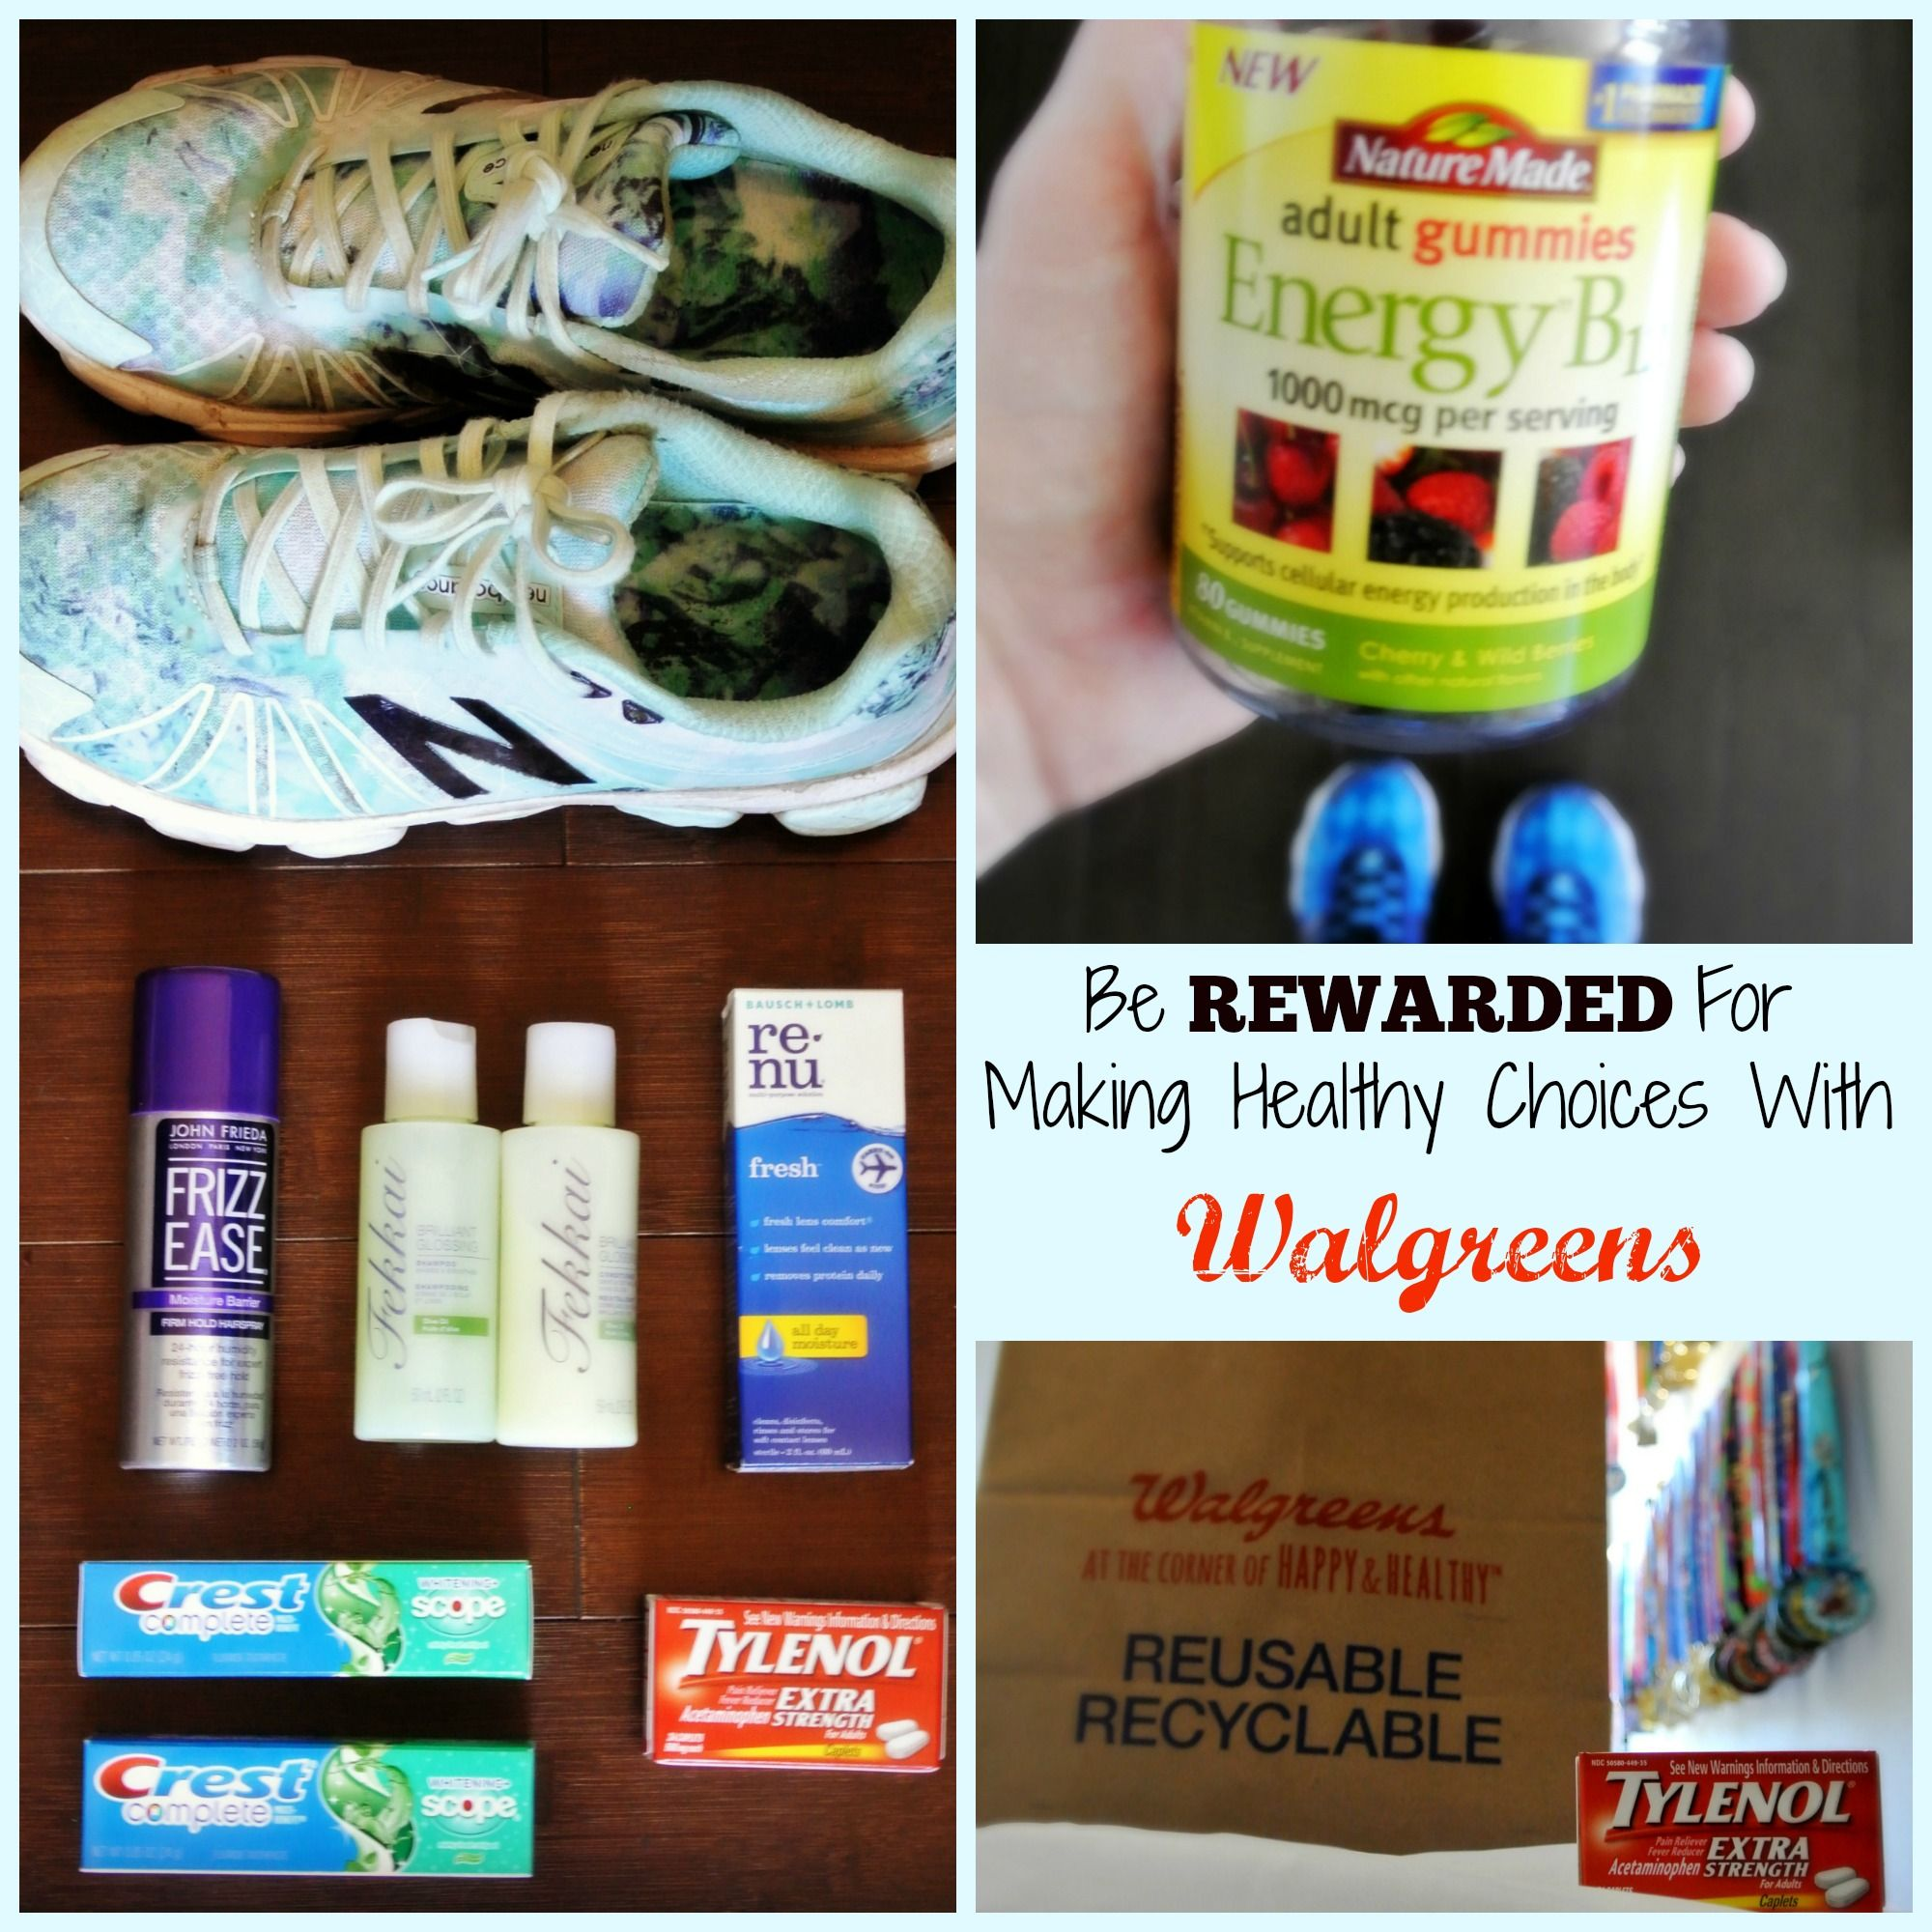 Be Rewarded For Making Healthy Choices With Walgreens